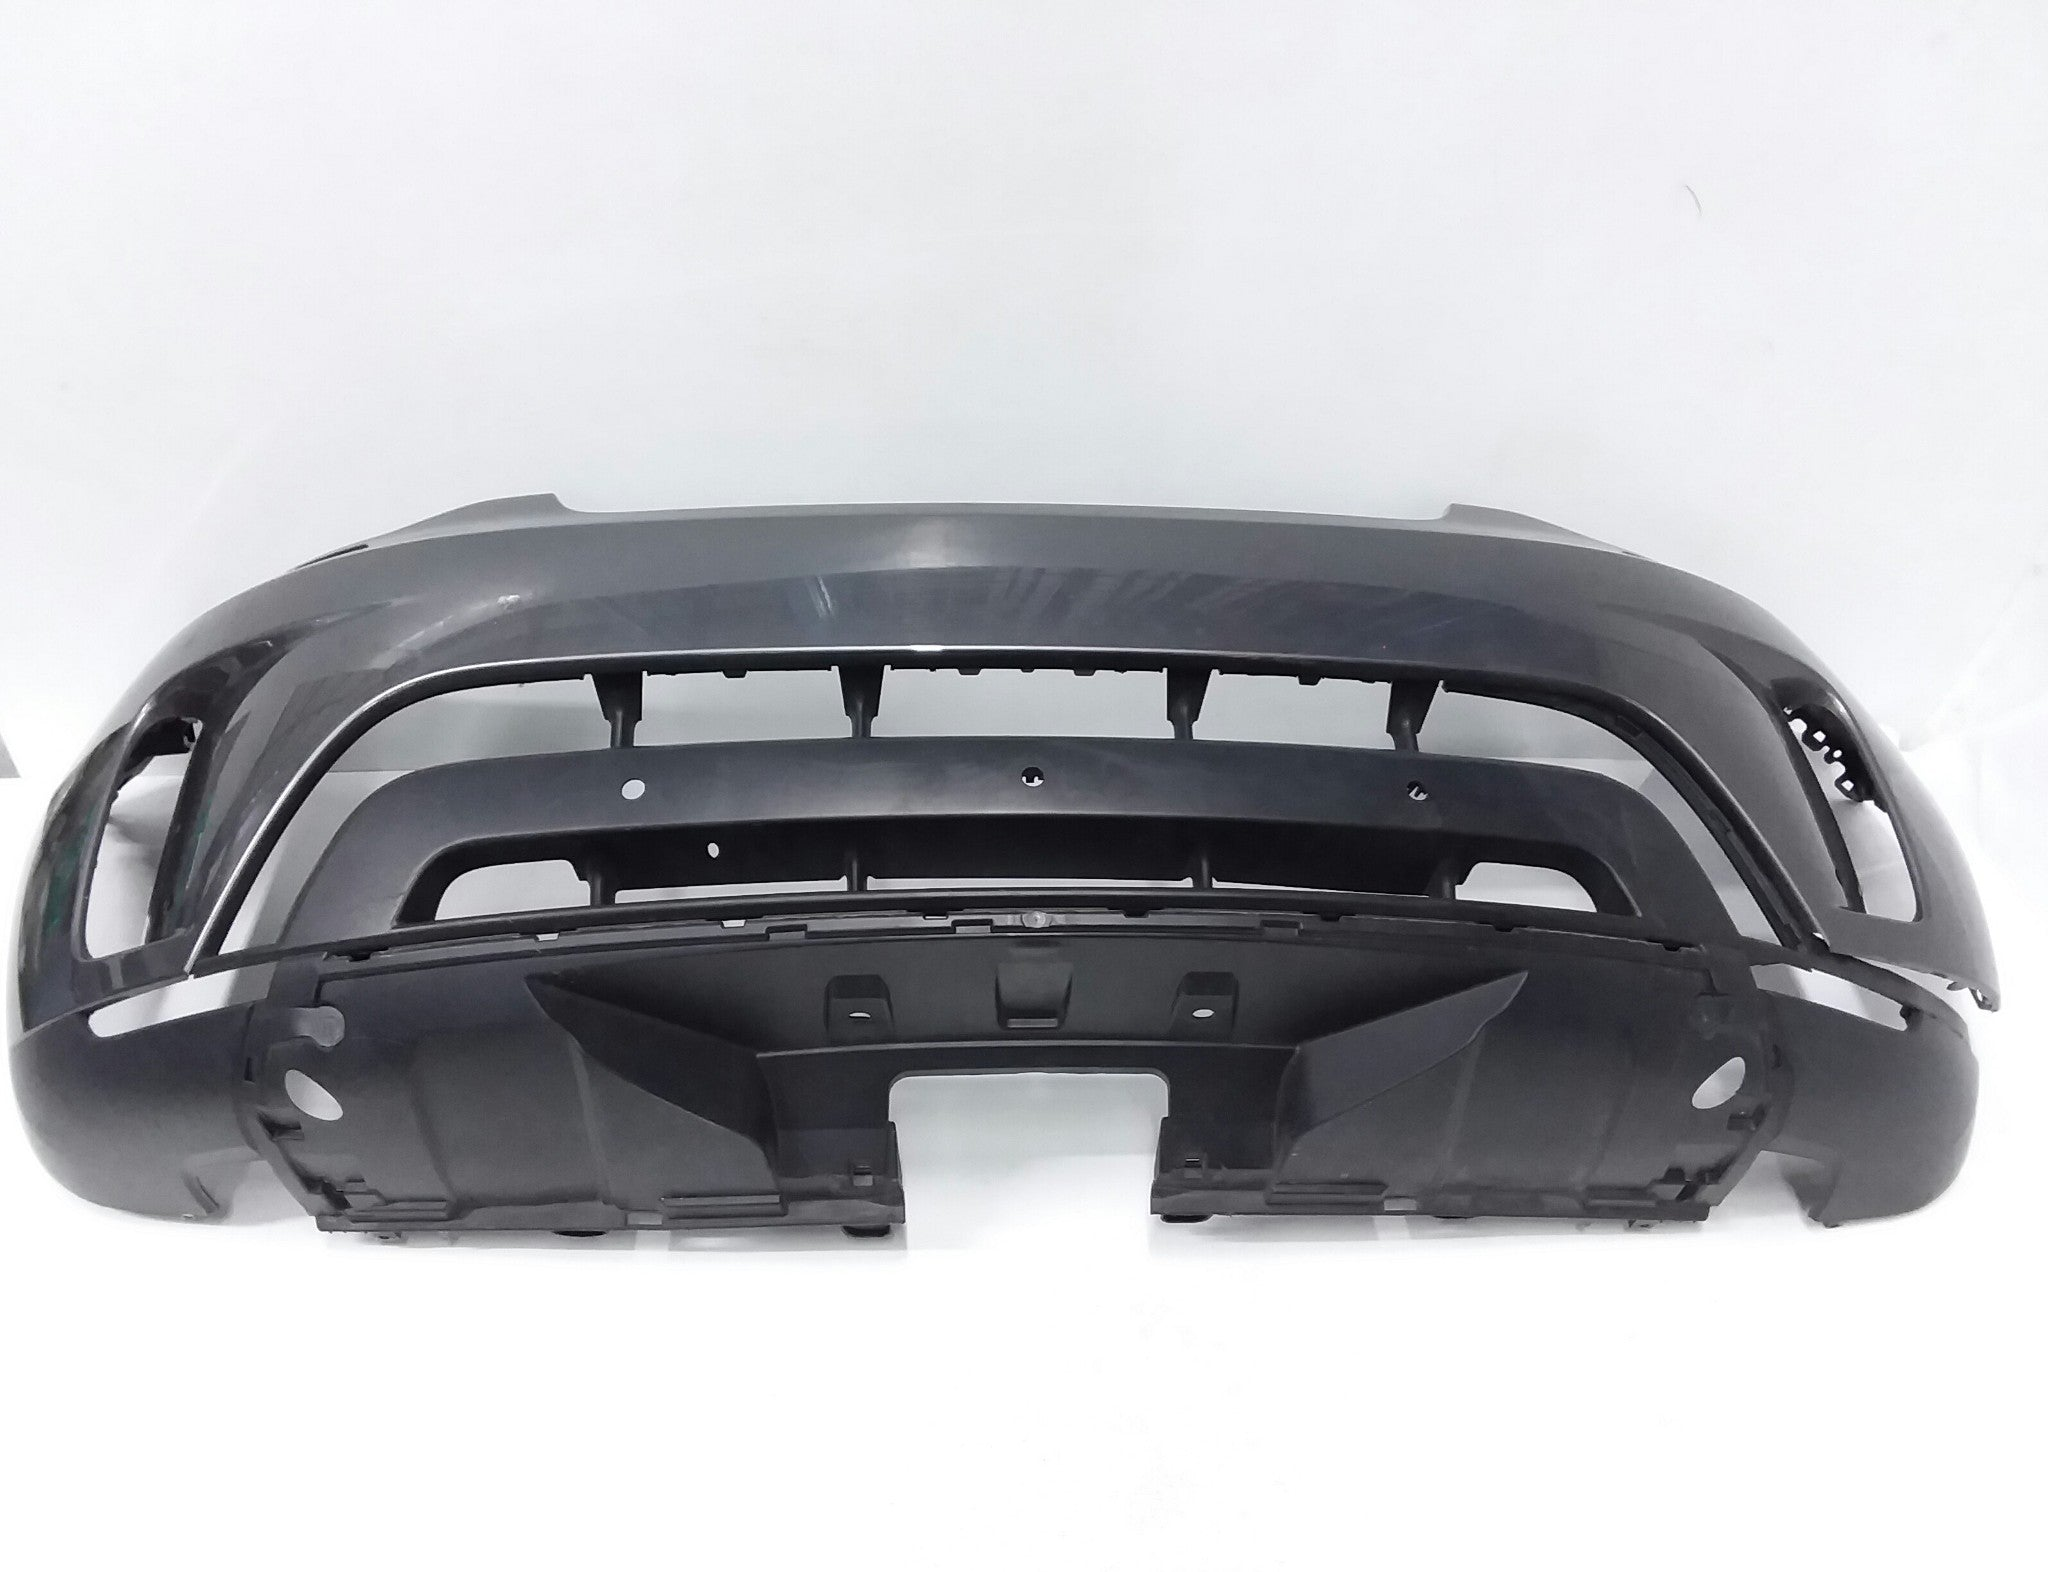 LAND ROVER DISCOVERY FRONT BUMPER COVER 2017 2018 OEM HY32-16F072 -AAW